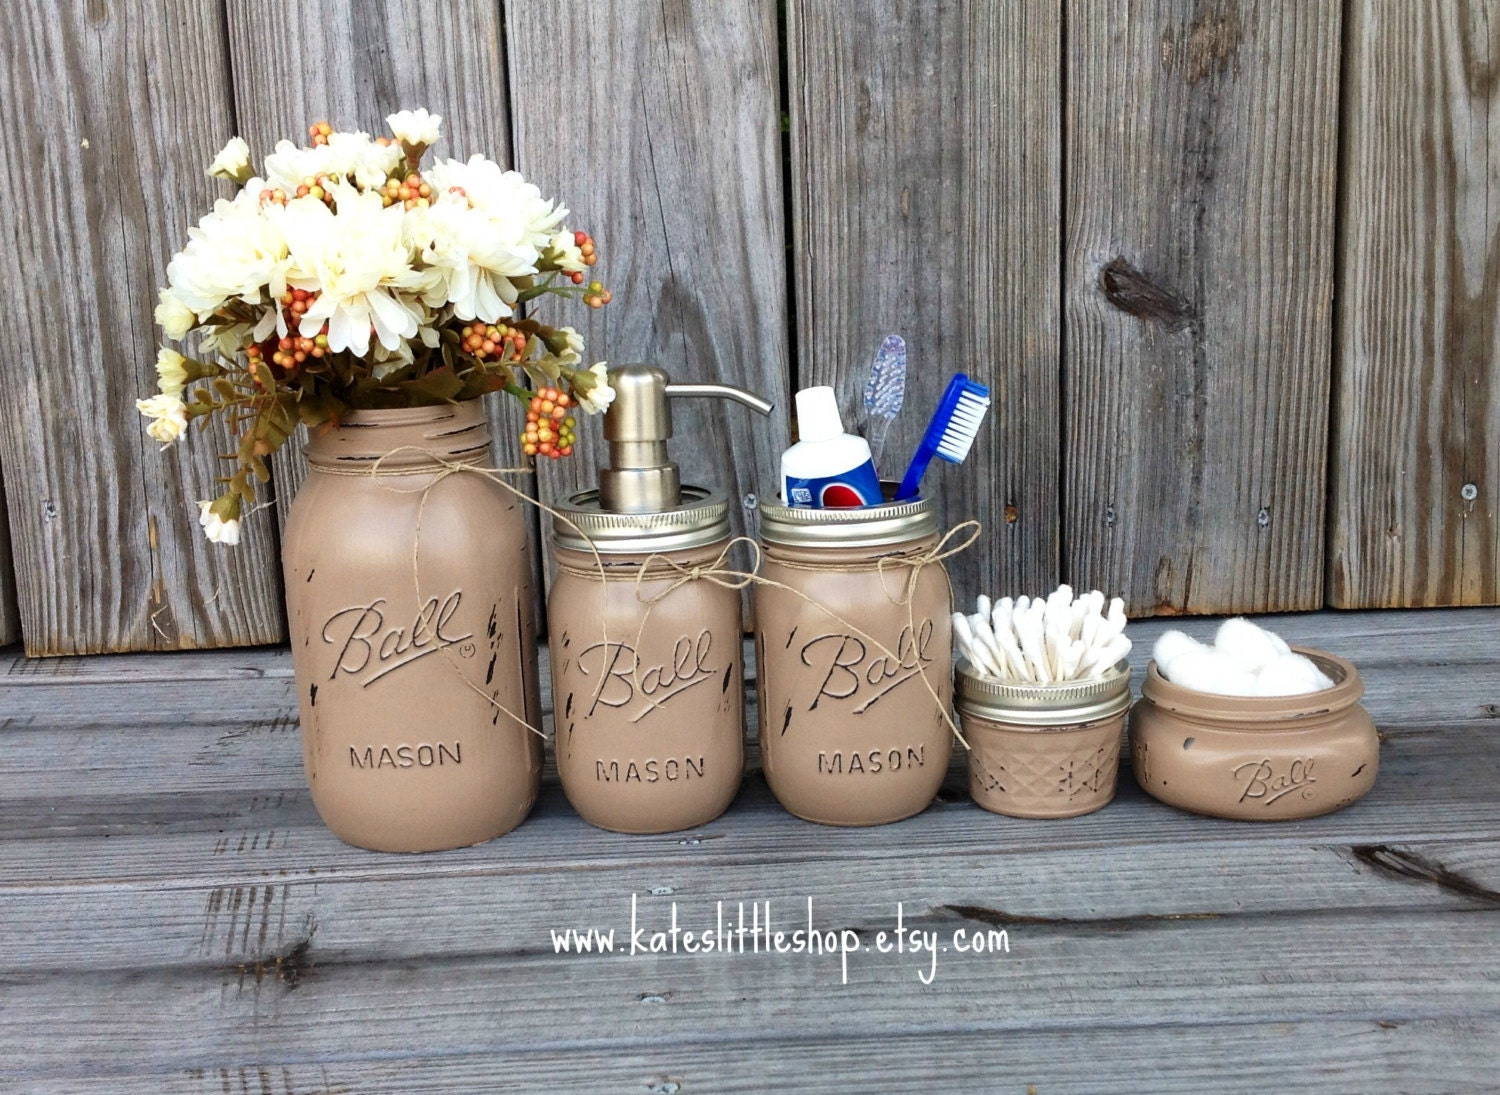 Mason jar bathroom kit ball mason jars rustic home decor for Bathroom decor mason jars